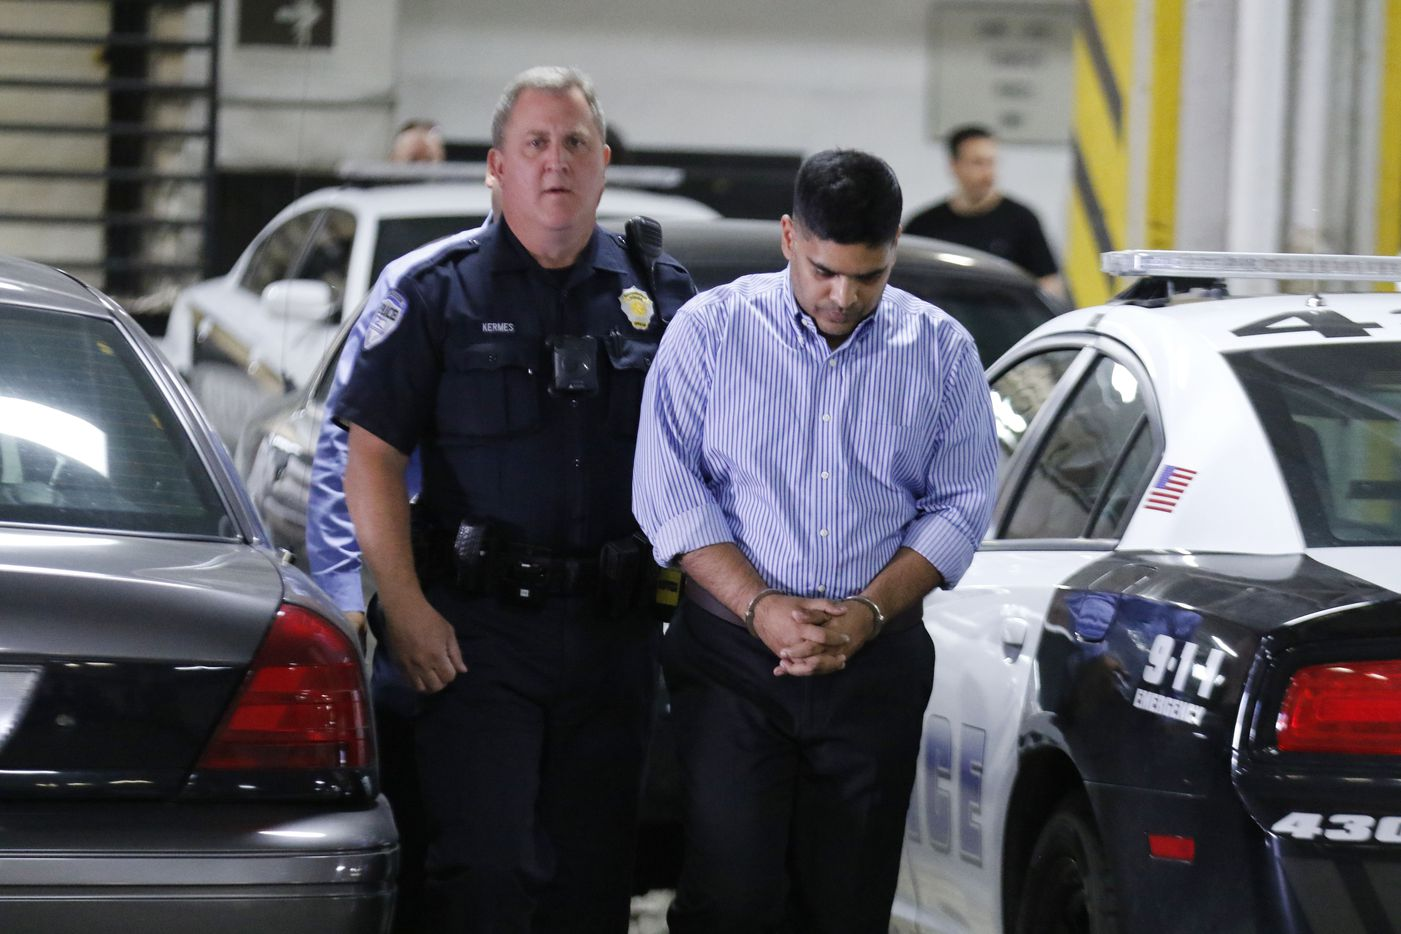 Wesley Mathews, right, adoptive father of Sherin Mathews, was arrested and charged with Injury to a Child arrives at the Lew Sterrett Justice Center on Wednesday, October 25, 2017 in Dallas. He was transferred from the Richardson, Texas jail and his bond has been set at $1,000,000. He was arrested on Oct. 23, 2017 after offering a new account of how his daughter went missing two weeks earlier. (David Woo/The Dallas Morning News)